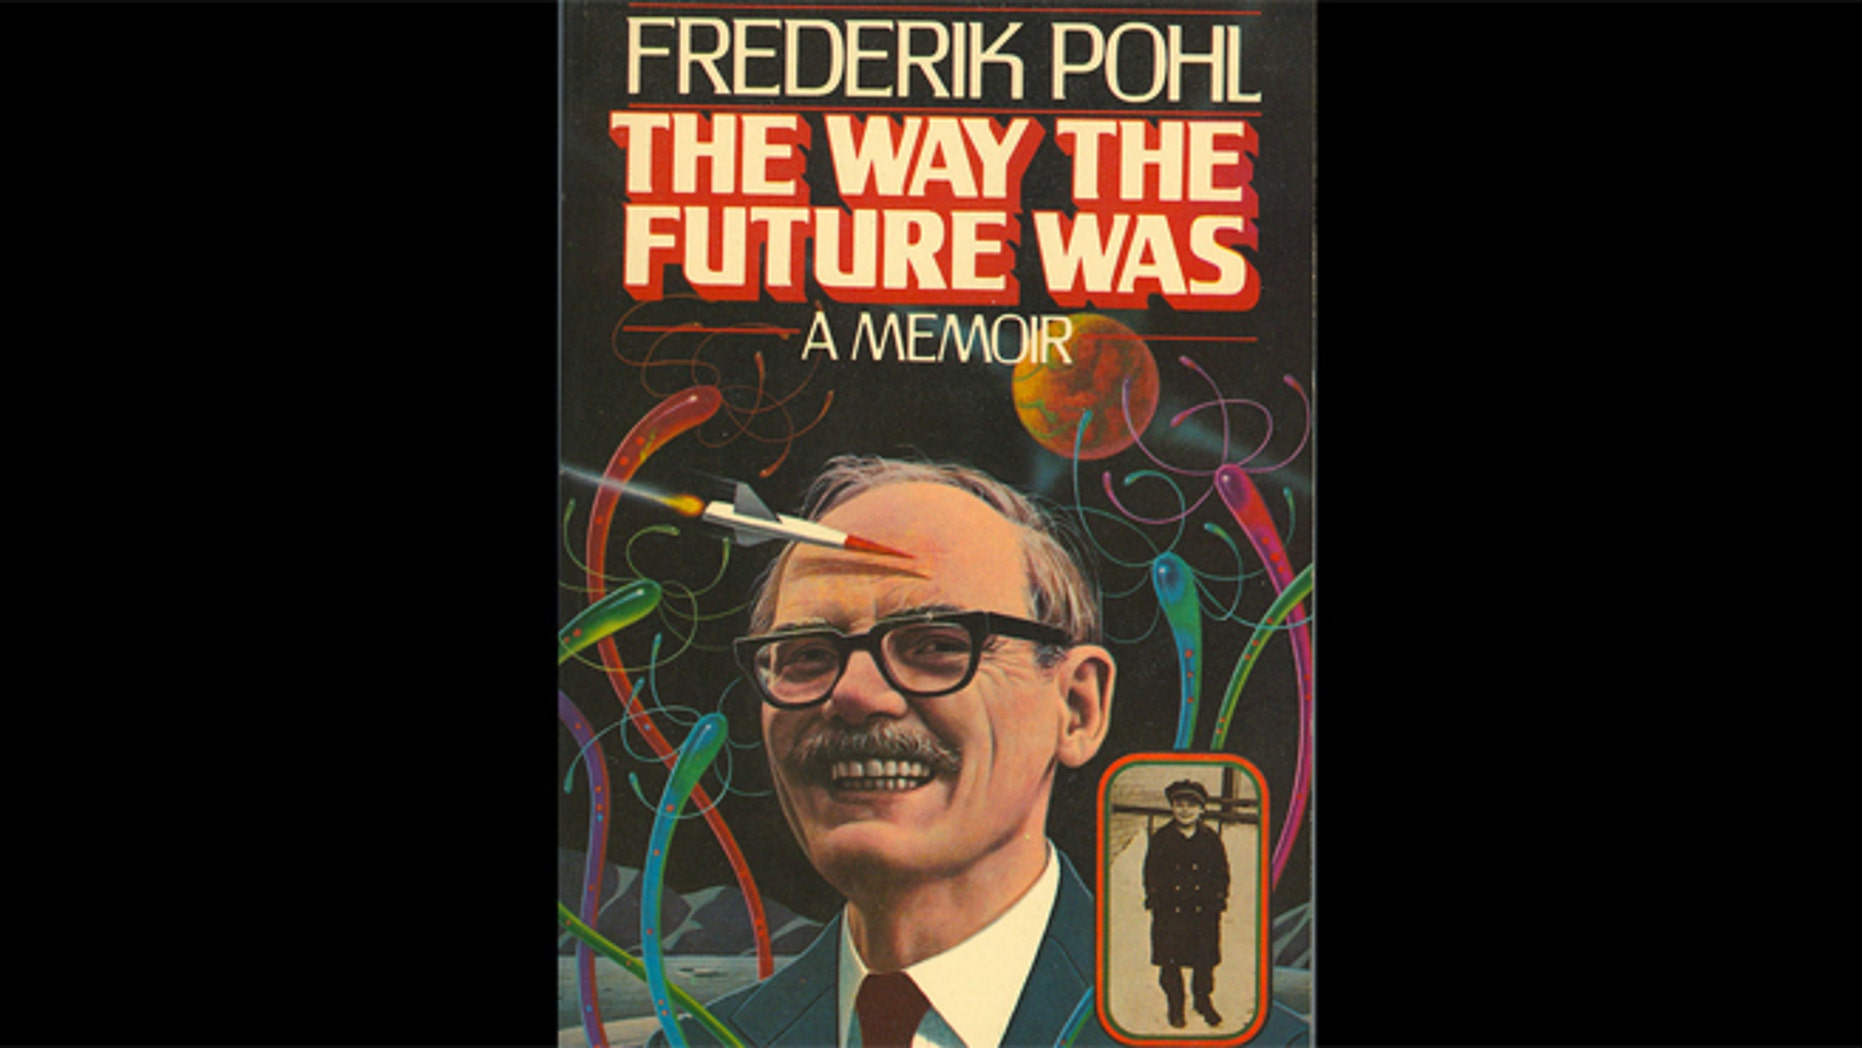 The Way the Future Was : A Memoir by Frederik Pohl.